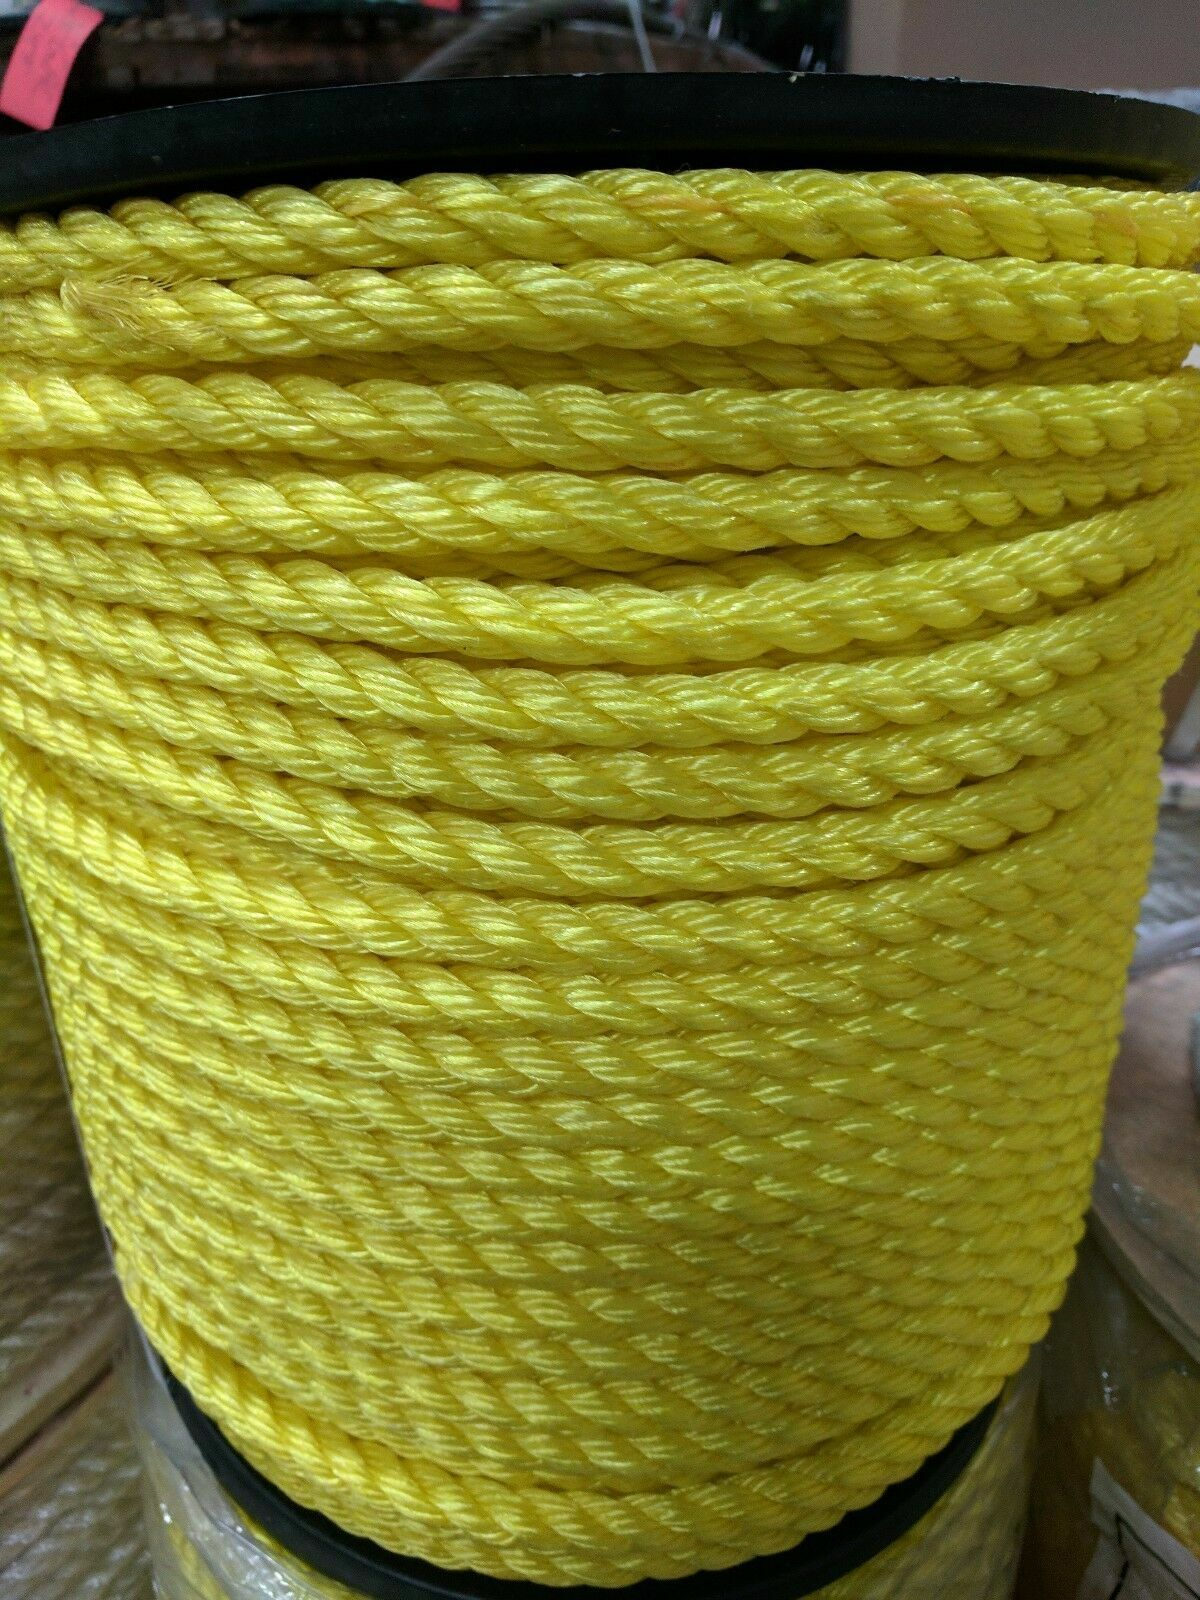 5 8  3-Strand Twisted Poly Pro Polypropylene Rope Yellow (600 Feet)